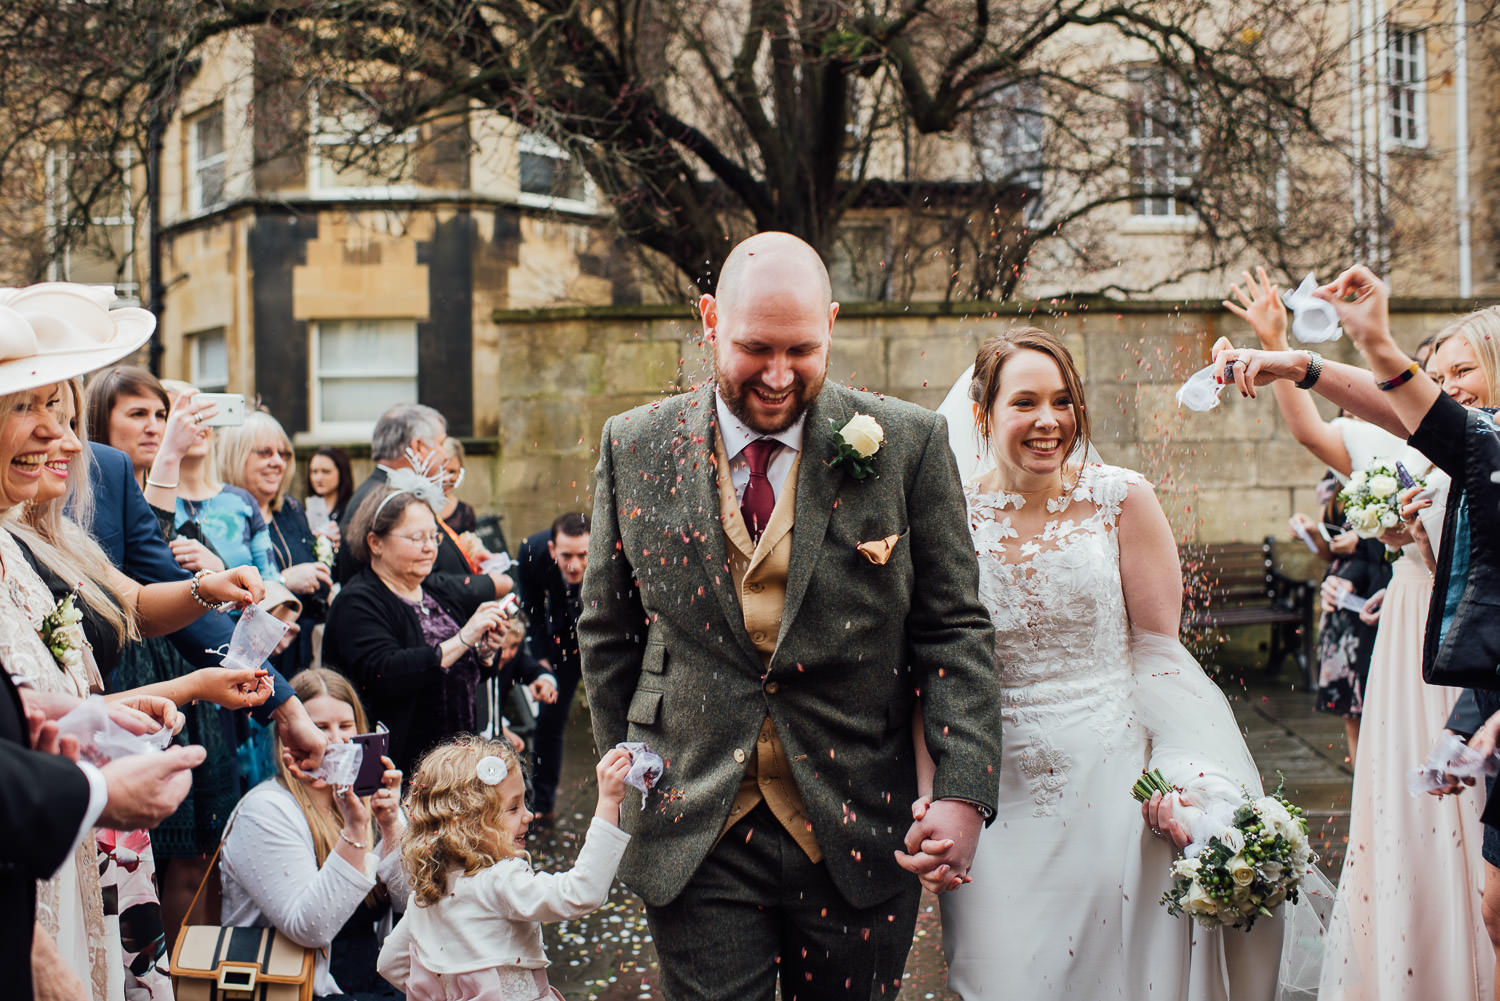 bride and groom smiling with confetti - alternative london wedding photographer the shannons photography